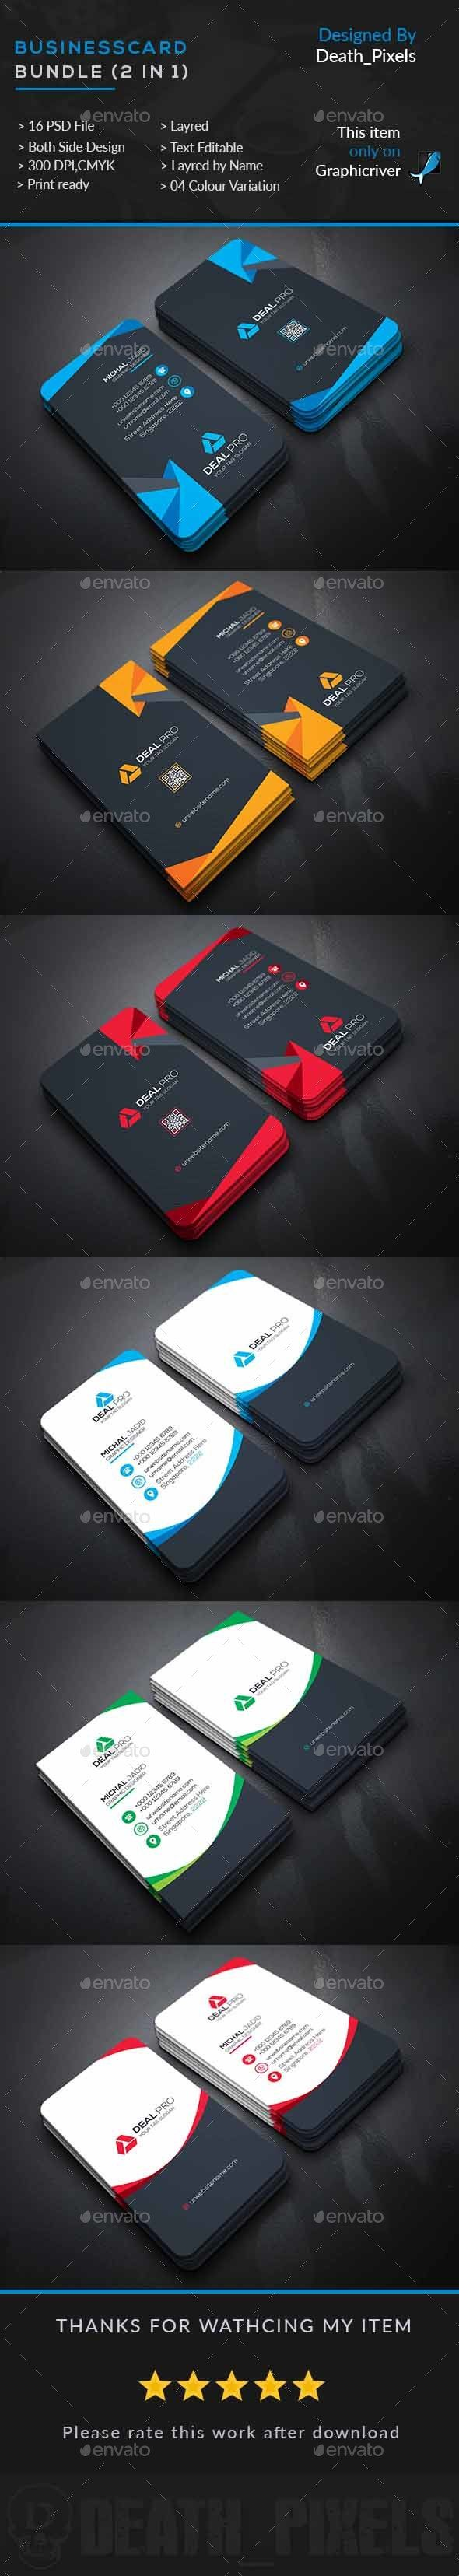 2334 best business card images on pinterest business card design